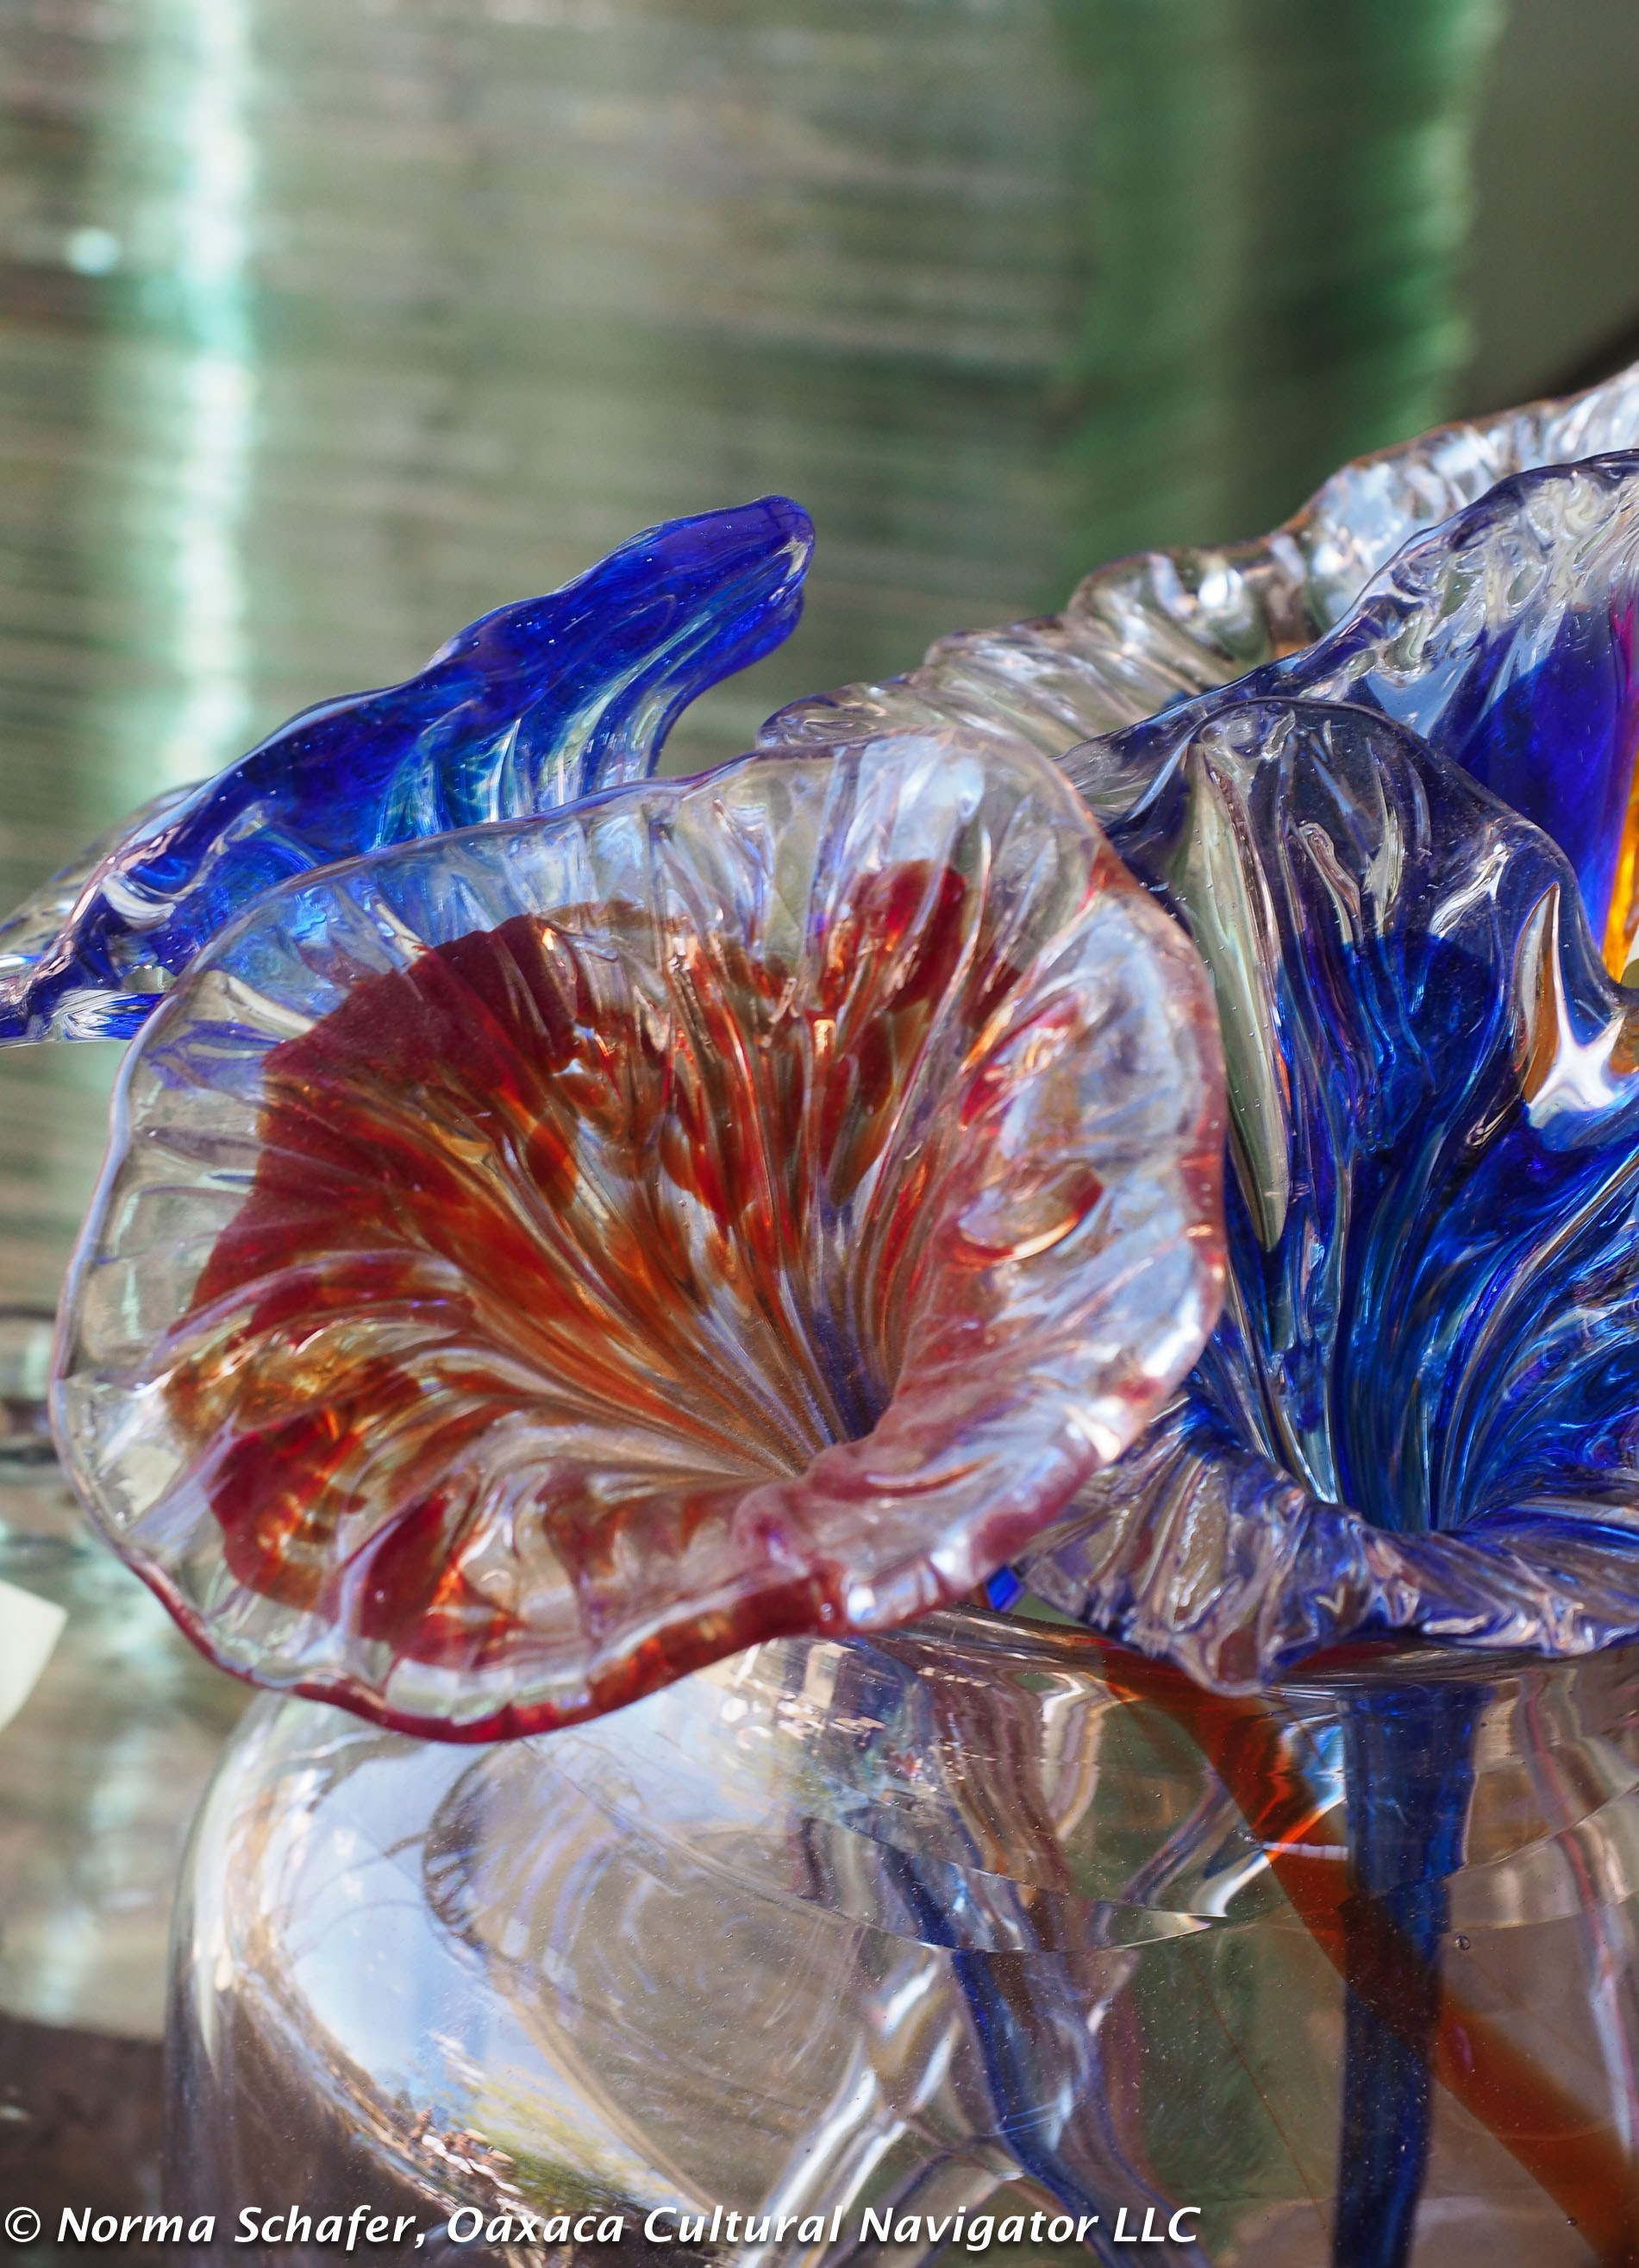 mexican blown glass vases of art glass oaxaca cultural navigator norma schafer throughout making recycled glass with discarded cooking oil that is converted to heat is how experiment takes on new meaning xaquixe founders christopher thornton and